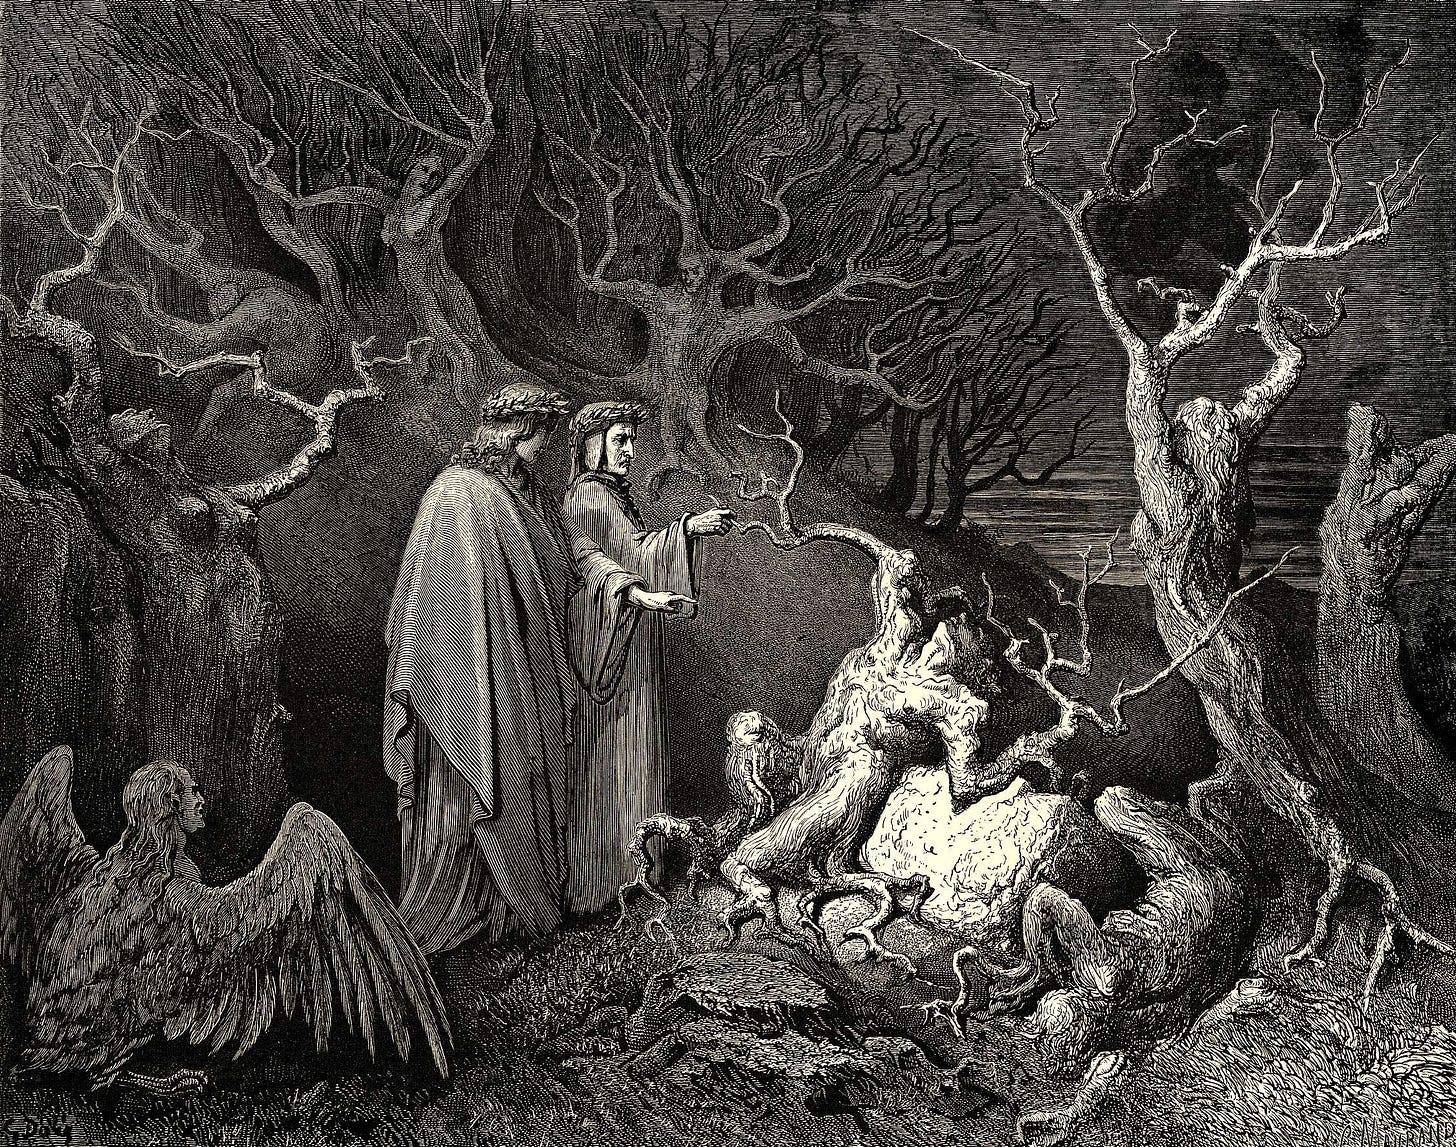 https://uploads3.wikiart.org/images/gustave-dore/the-inferno-canto-13.jpg